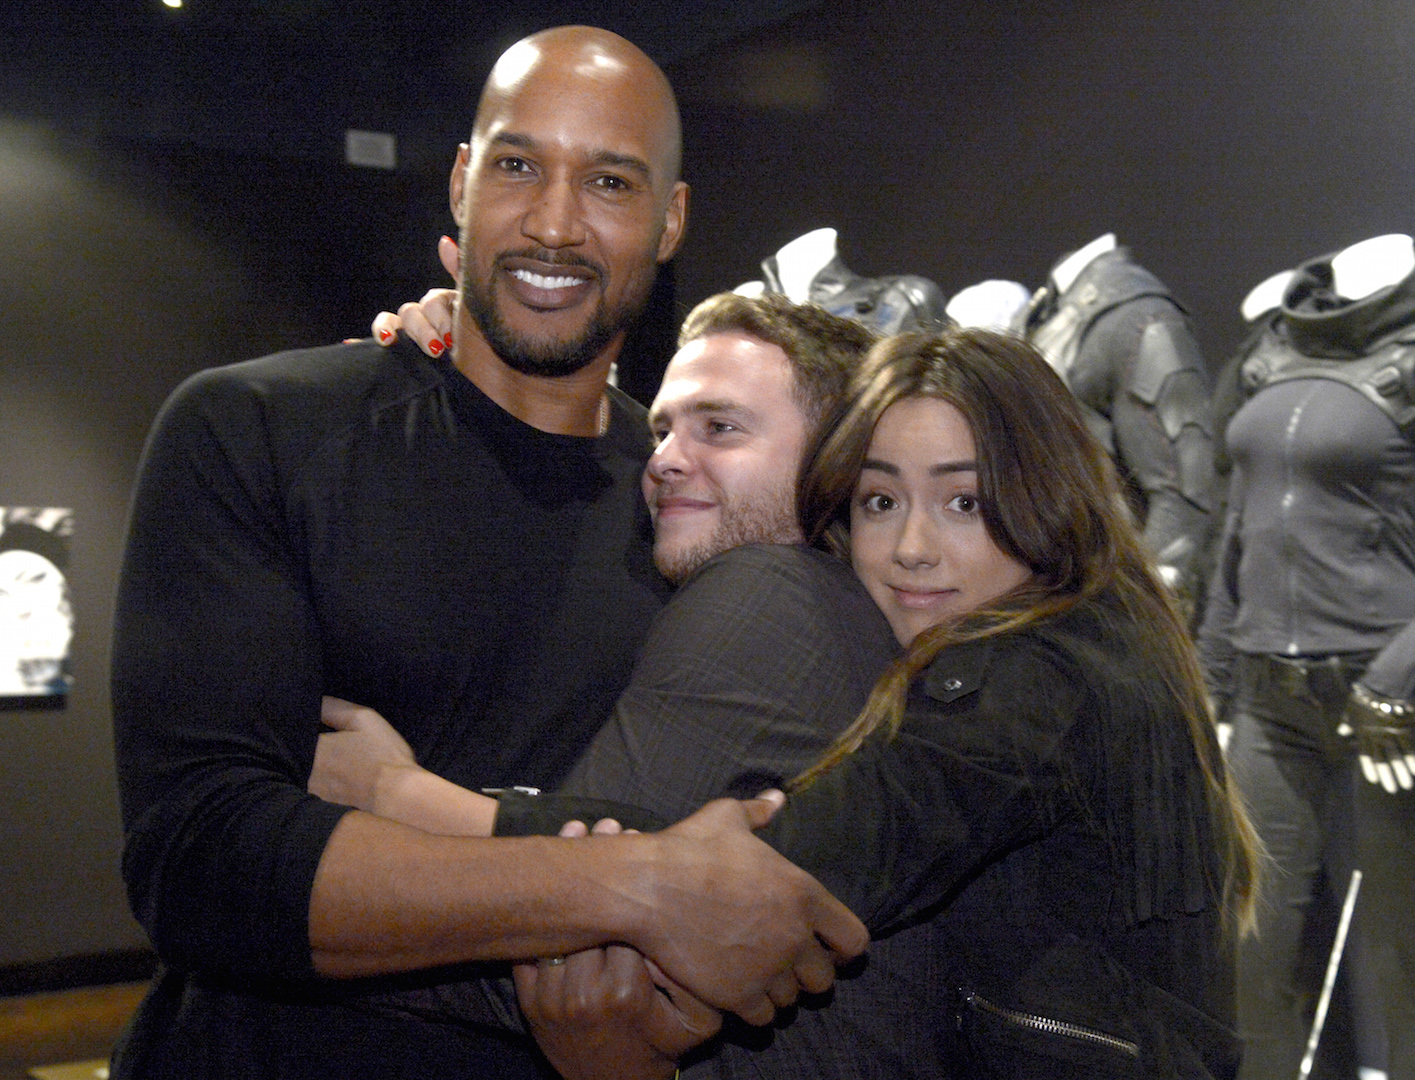 Henry Simmons, from left,  Iain De Caestecker and Chloe Bennet seen at The 9th Annual Outstanding Art of Television Costume Design Exhibition opening at the FIDM Museum & Galleries on the Park on Saturday, July 18, 2015, in Los Angeles. The Television Academy and FIDM Museum honored this year's Emmy(R) Award winners in Outstanding Costume Design at the opening reception for this annual special exhibition. (Photo by Phil McCarten/Invision for the Television Academy/AP Images)